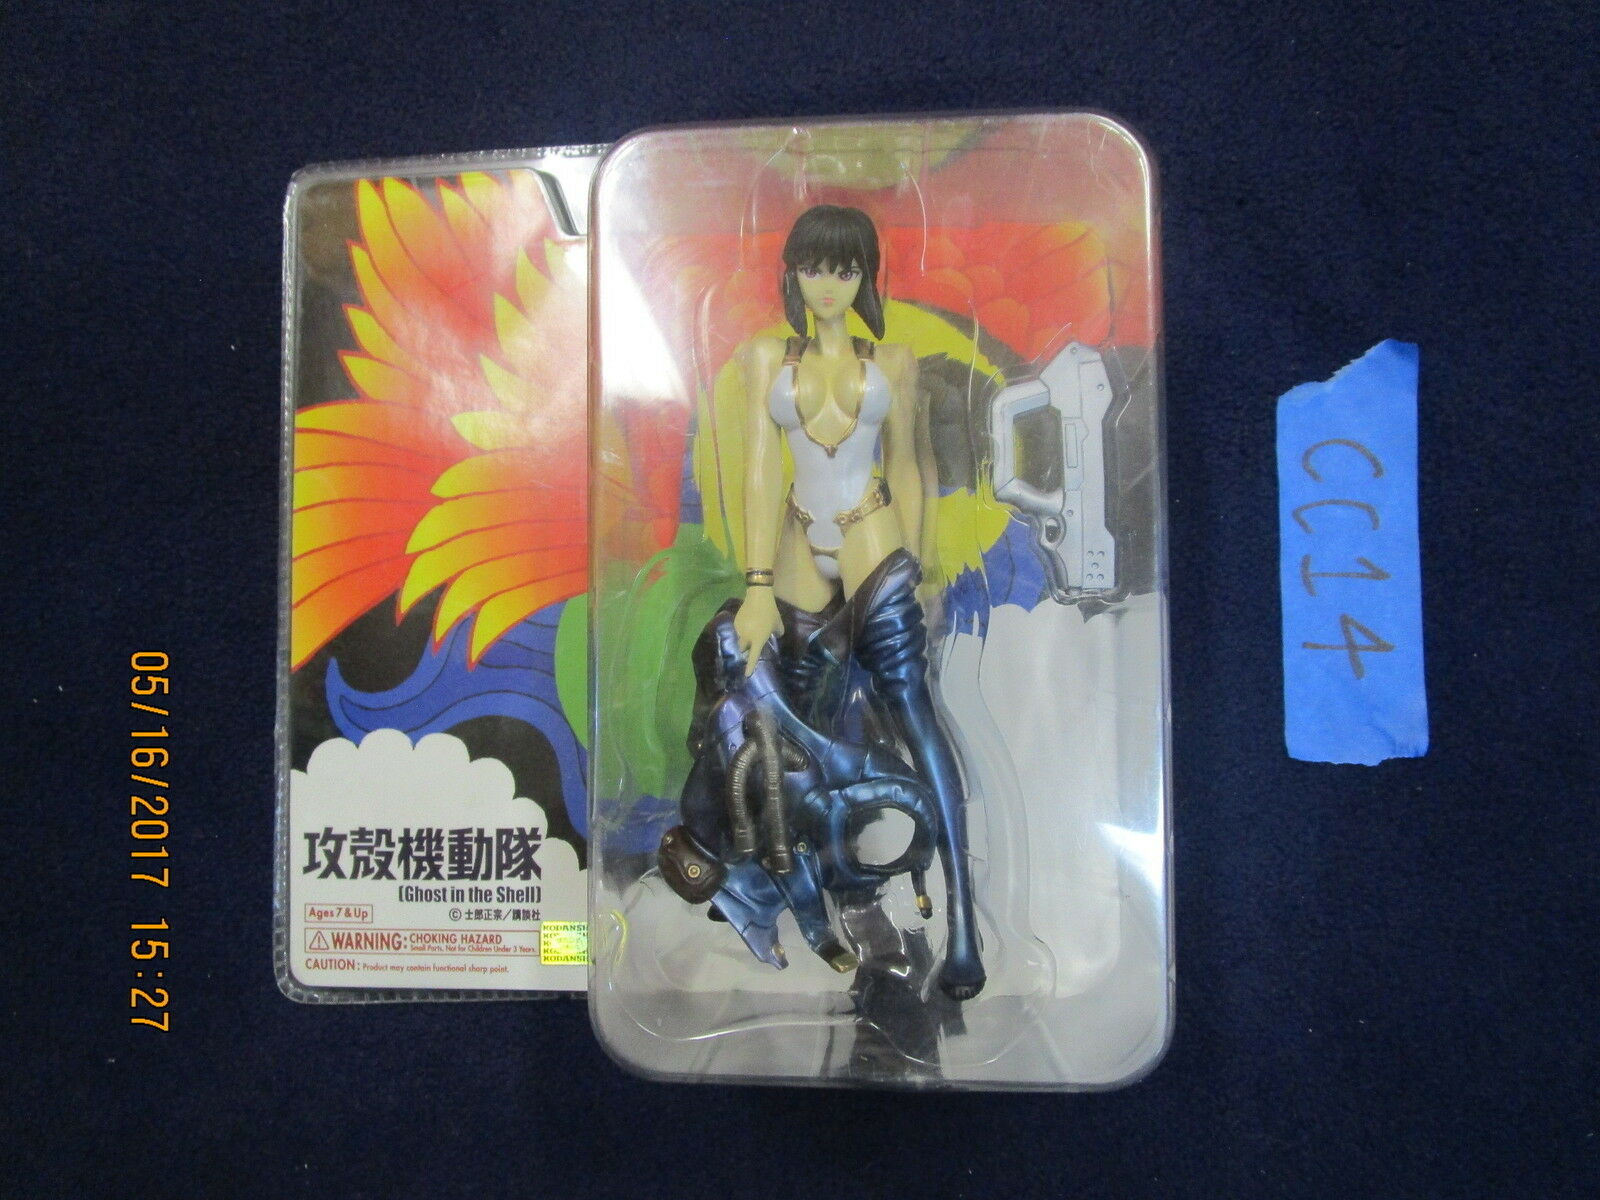 ALPHA giocattoli Lot MOTOKO KUSANAGI DIVER DOWN ALIAS ALIAS ALIAS REPAINT Ghost in the Shell Anime 0db32e